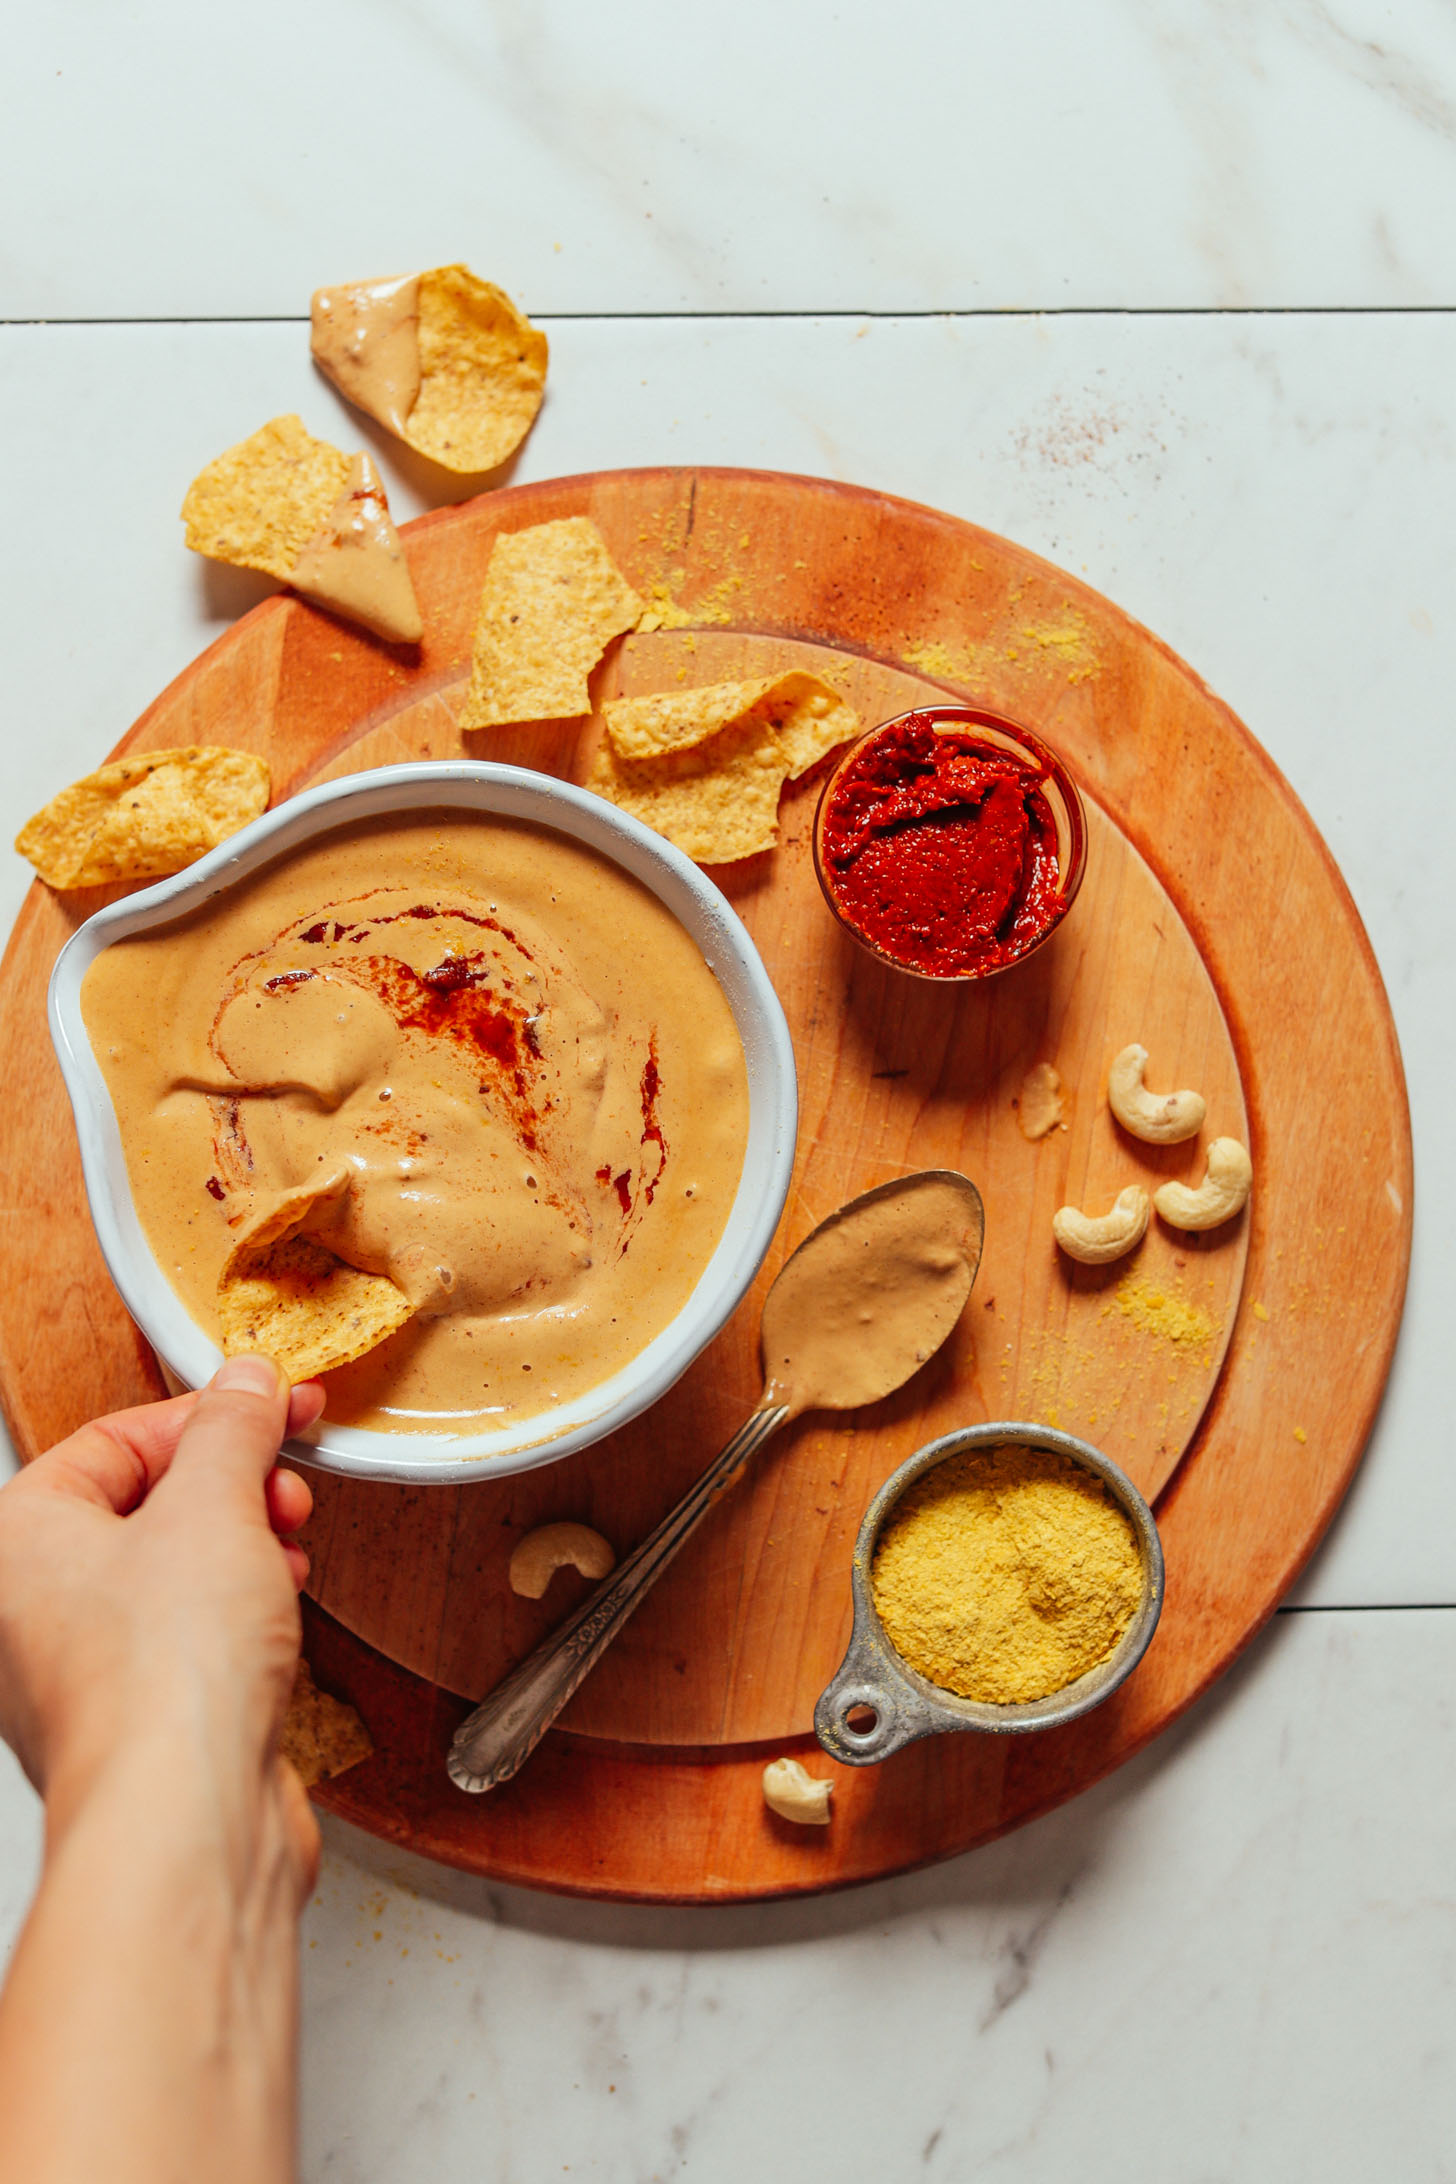 Overhead image of vegan cashew queso in a bowl with a hand dipping a dip